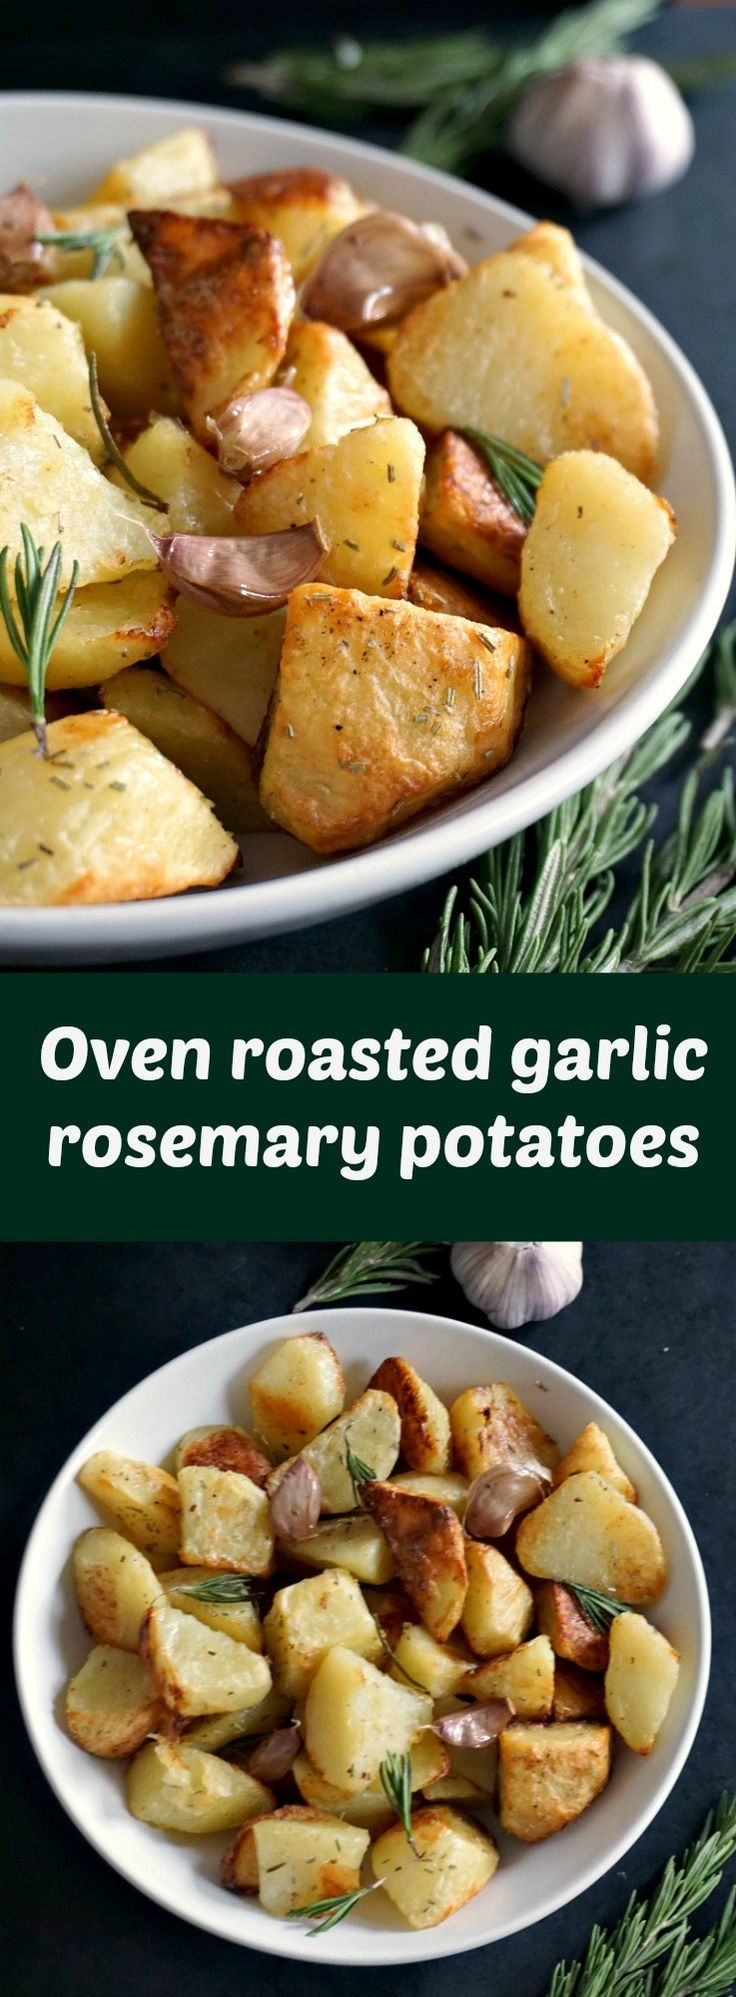 Oven roasted garlic rosemary potatoes, the best side dish for that juicy Thanksgiving Turkey, or for the Christmas Dinner. Sunday Roast wouldn't be the same without them either. Let's dig in.